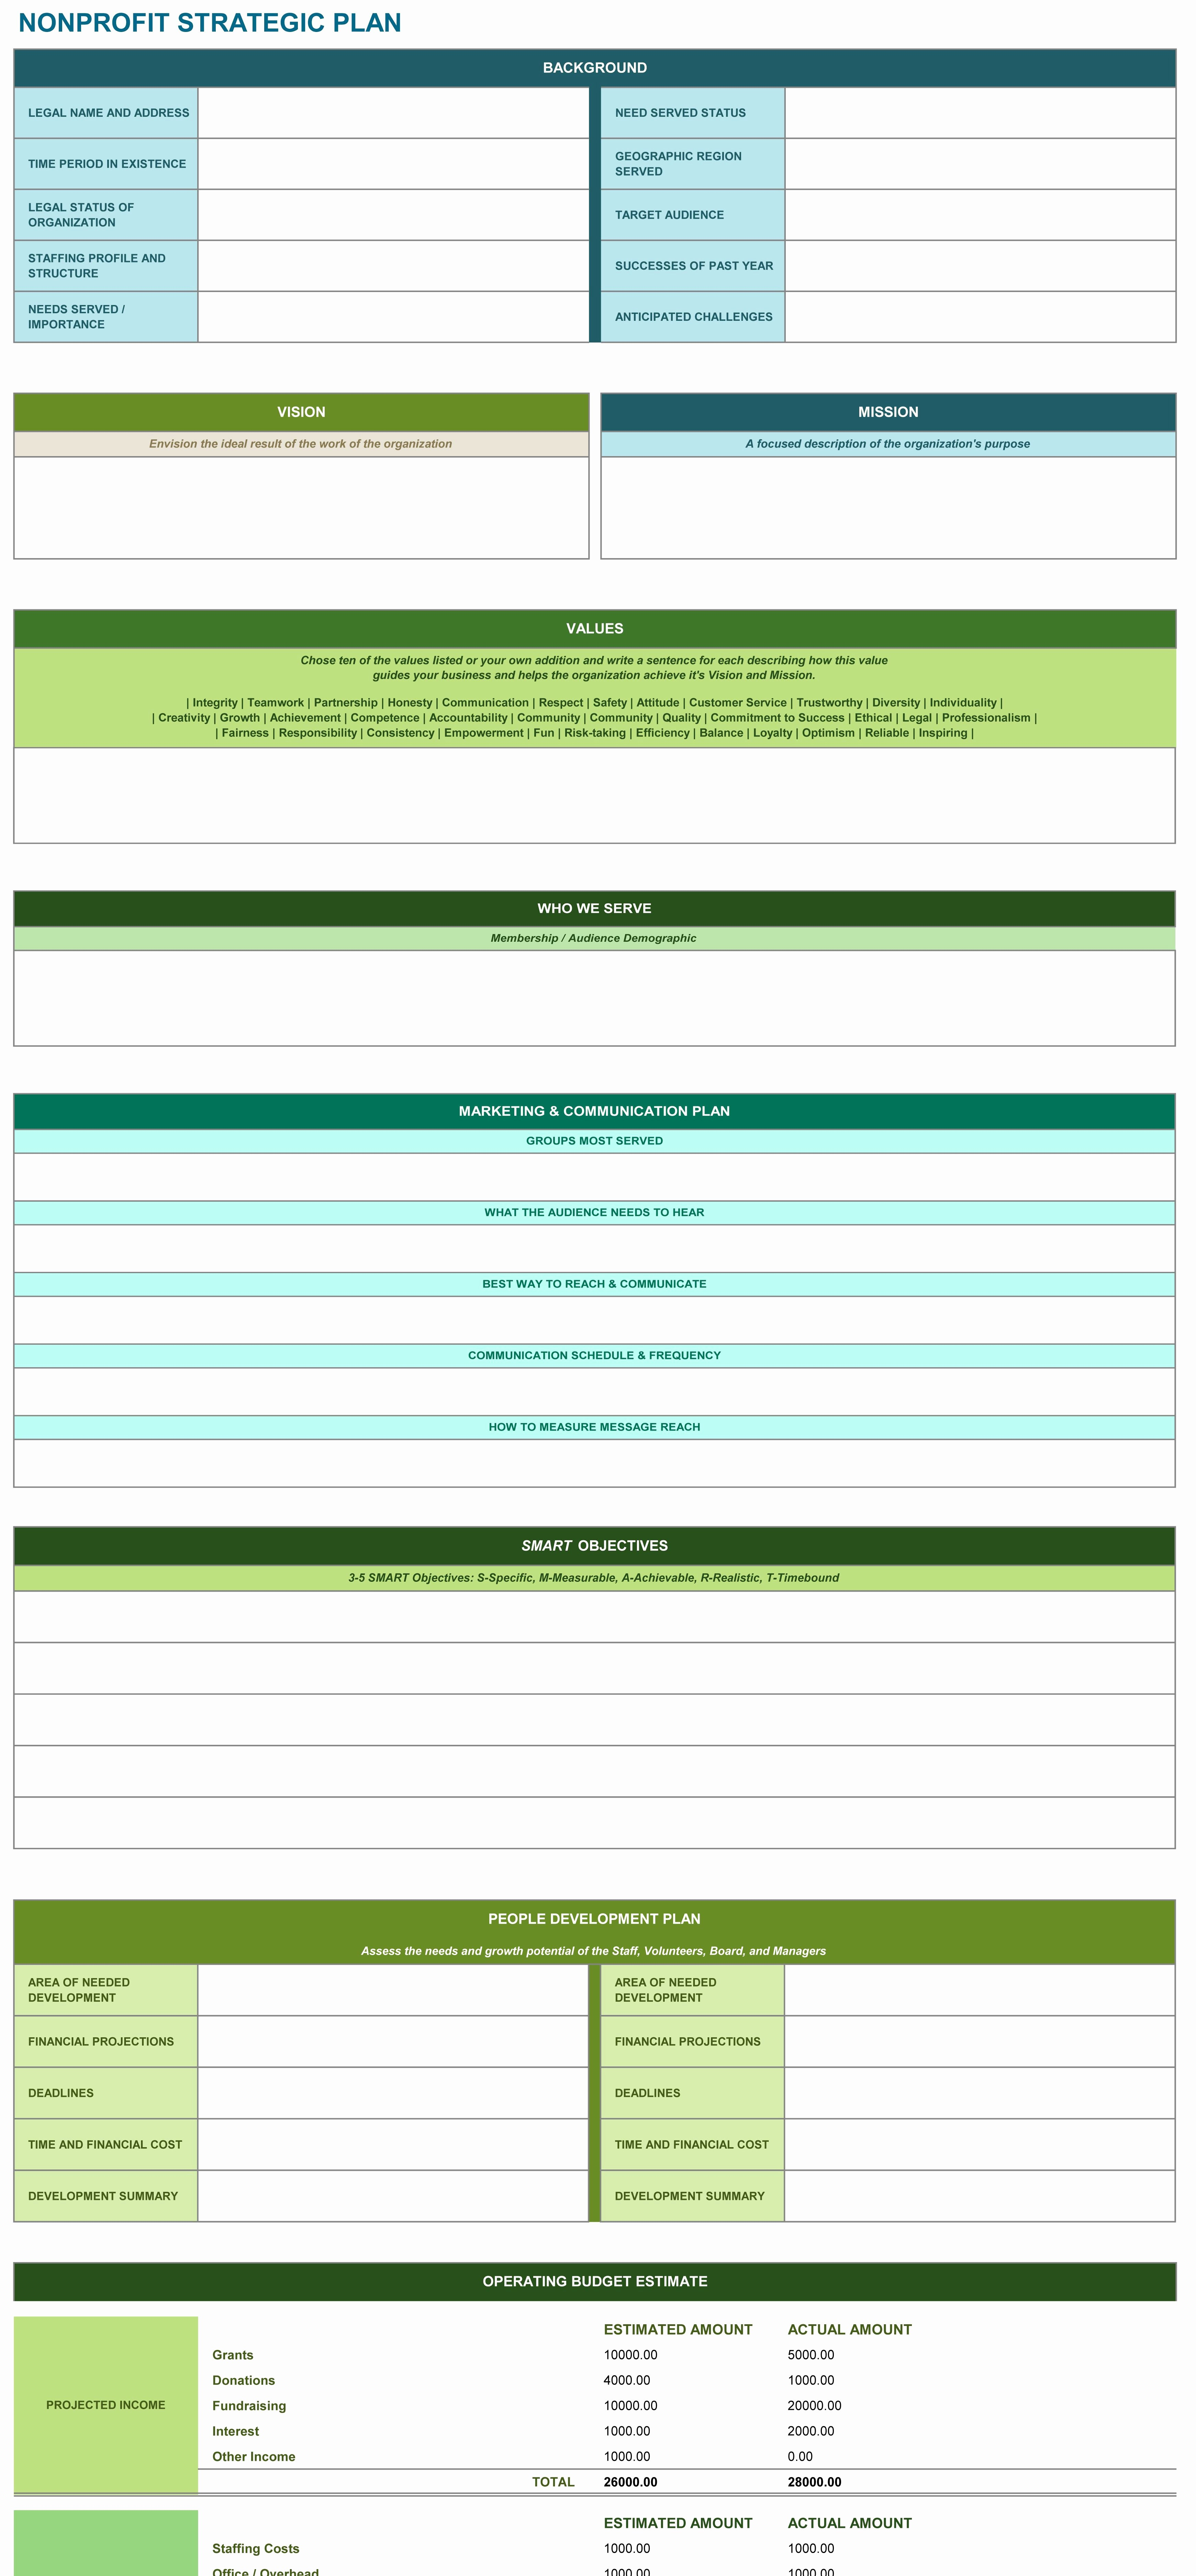 Strategic Planning for Nonprofits Template Lovely Non Profit Strategic Plan Excel Template